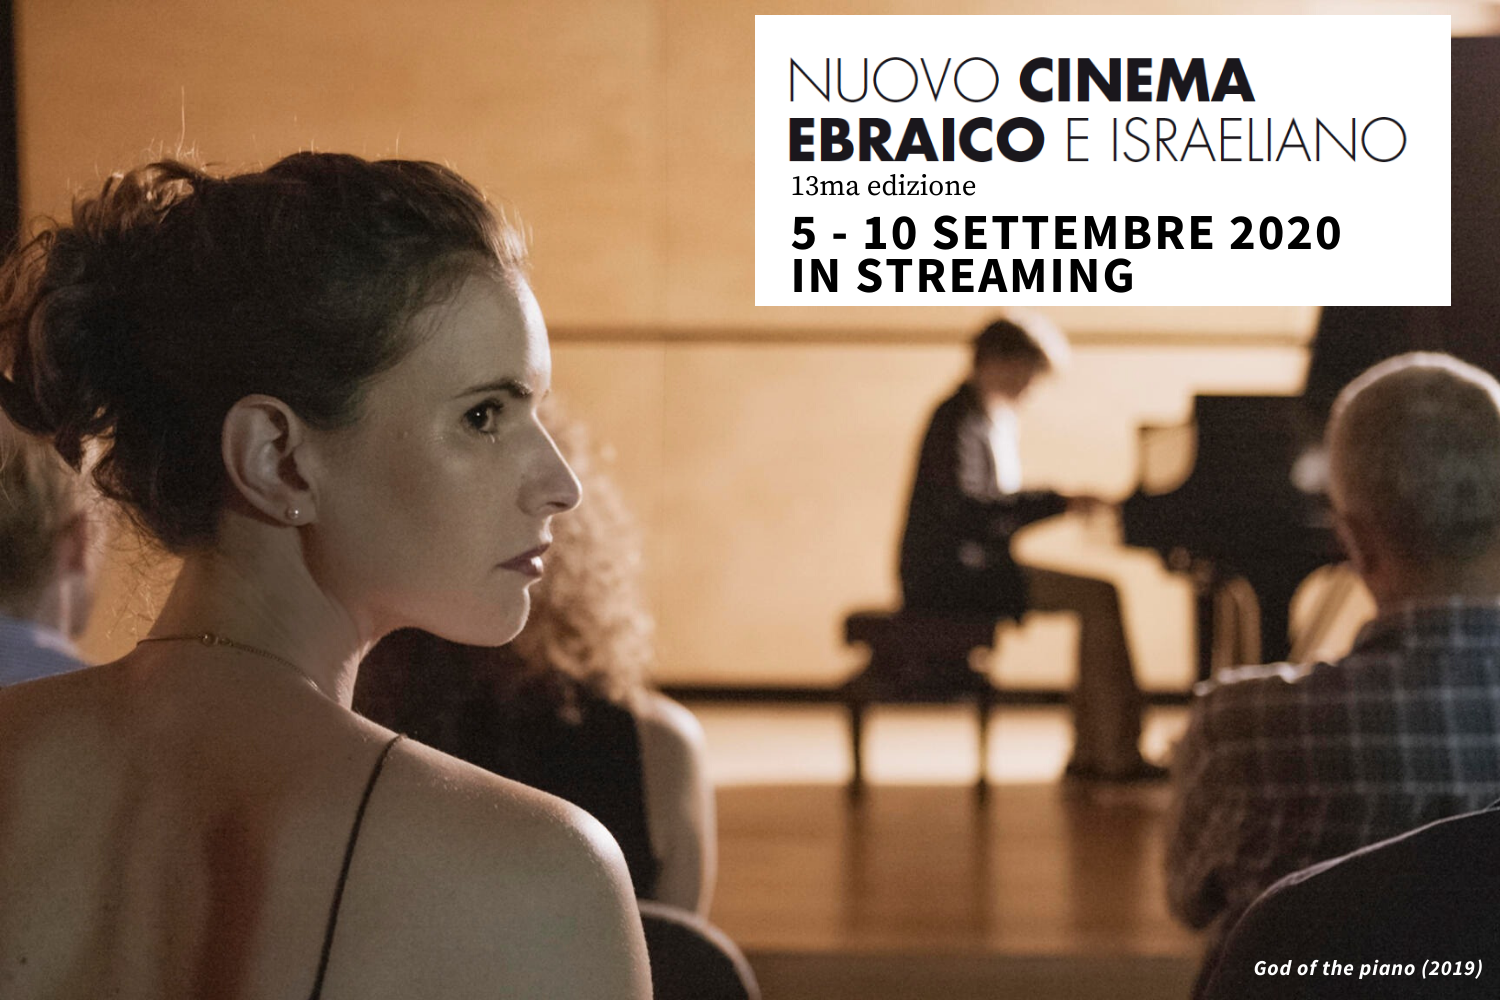 5-10|09 Save the Date: Rassegna Nuovo Cinema Ebraico e Israeliano